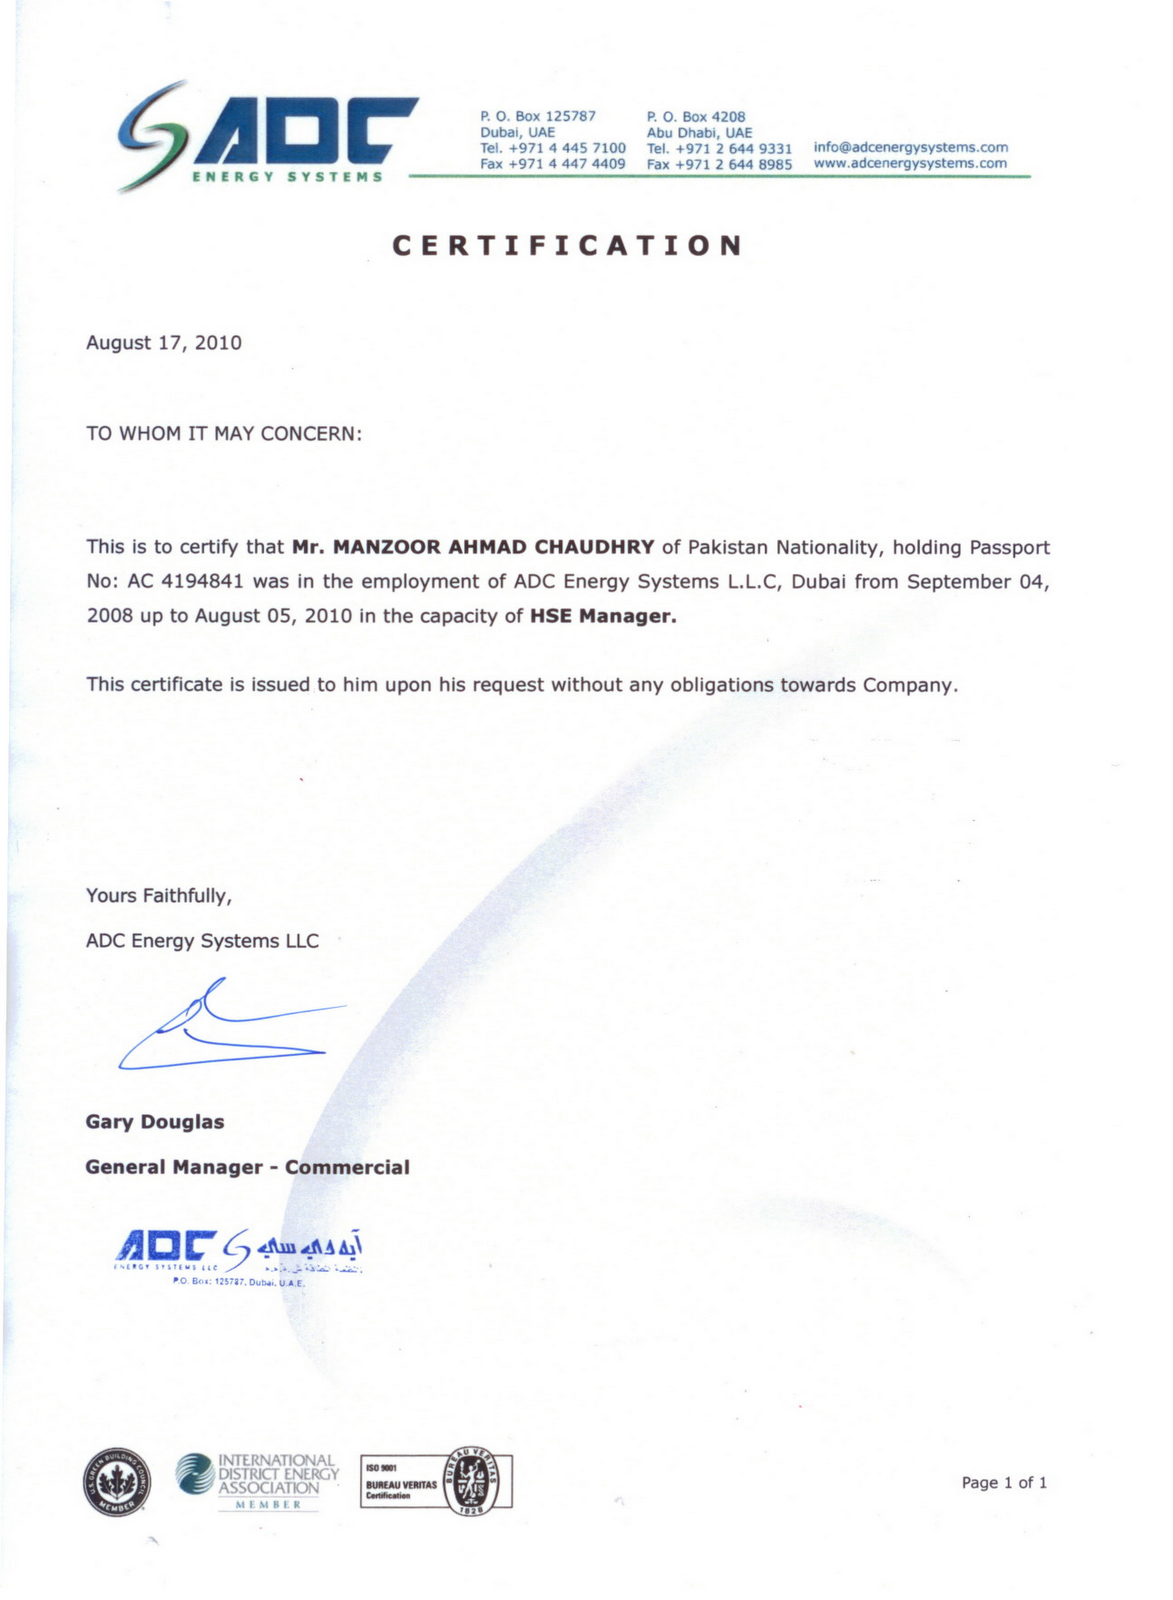 Experience letter format uae 28 images experience letter experience letter format uae manzoor ahmad chaudhry hse manager exp letter adc energy systems llc uae yadclub Choice Image